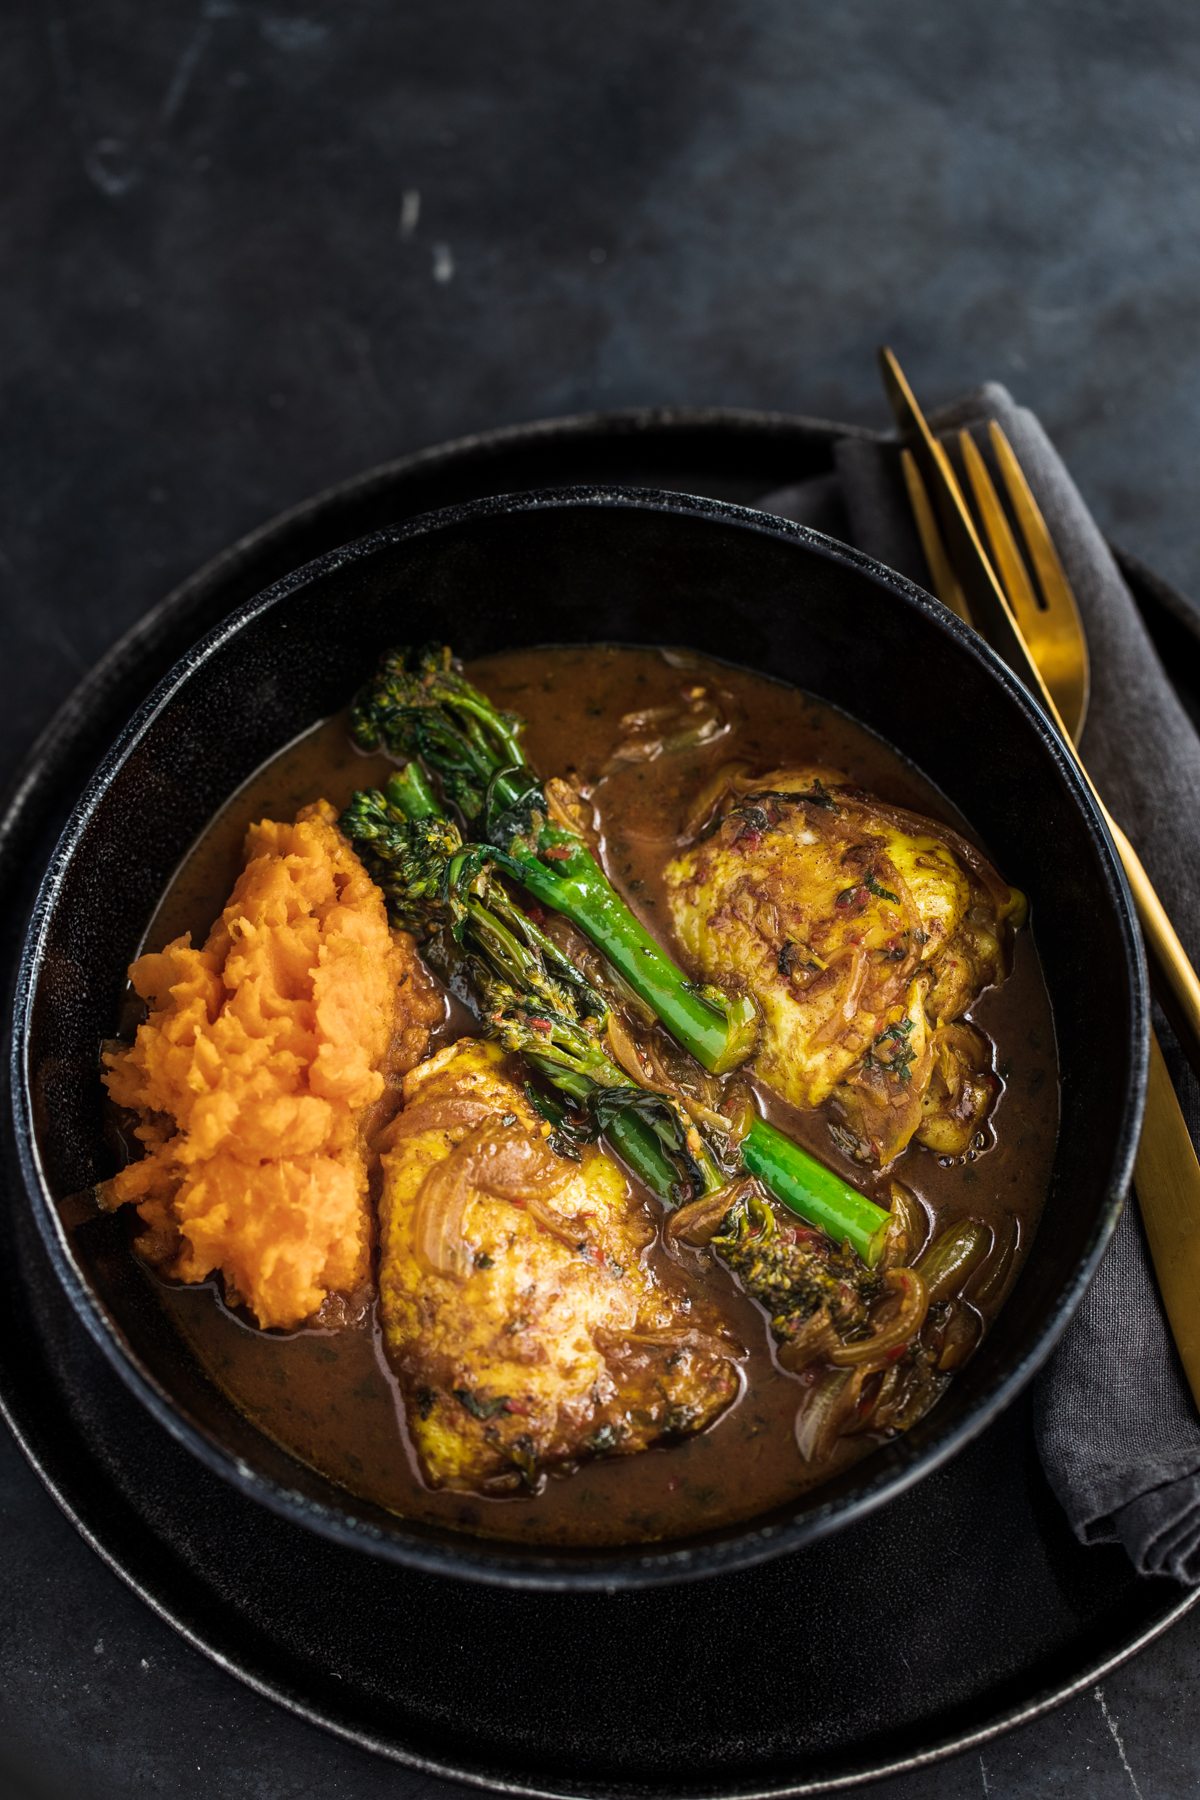 Malaysian Chicken Thigh Curry with broccoli and sweet potato in a black bowl